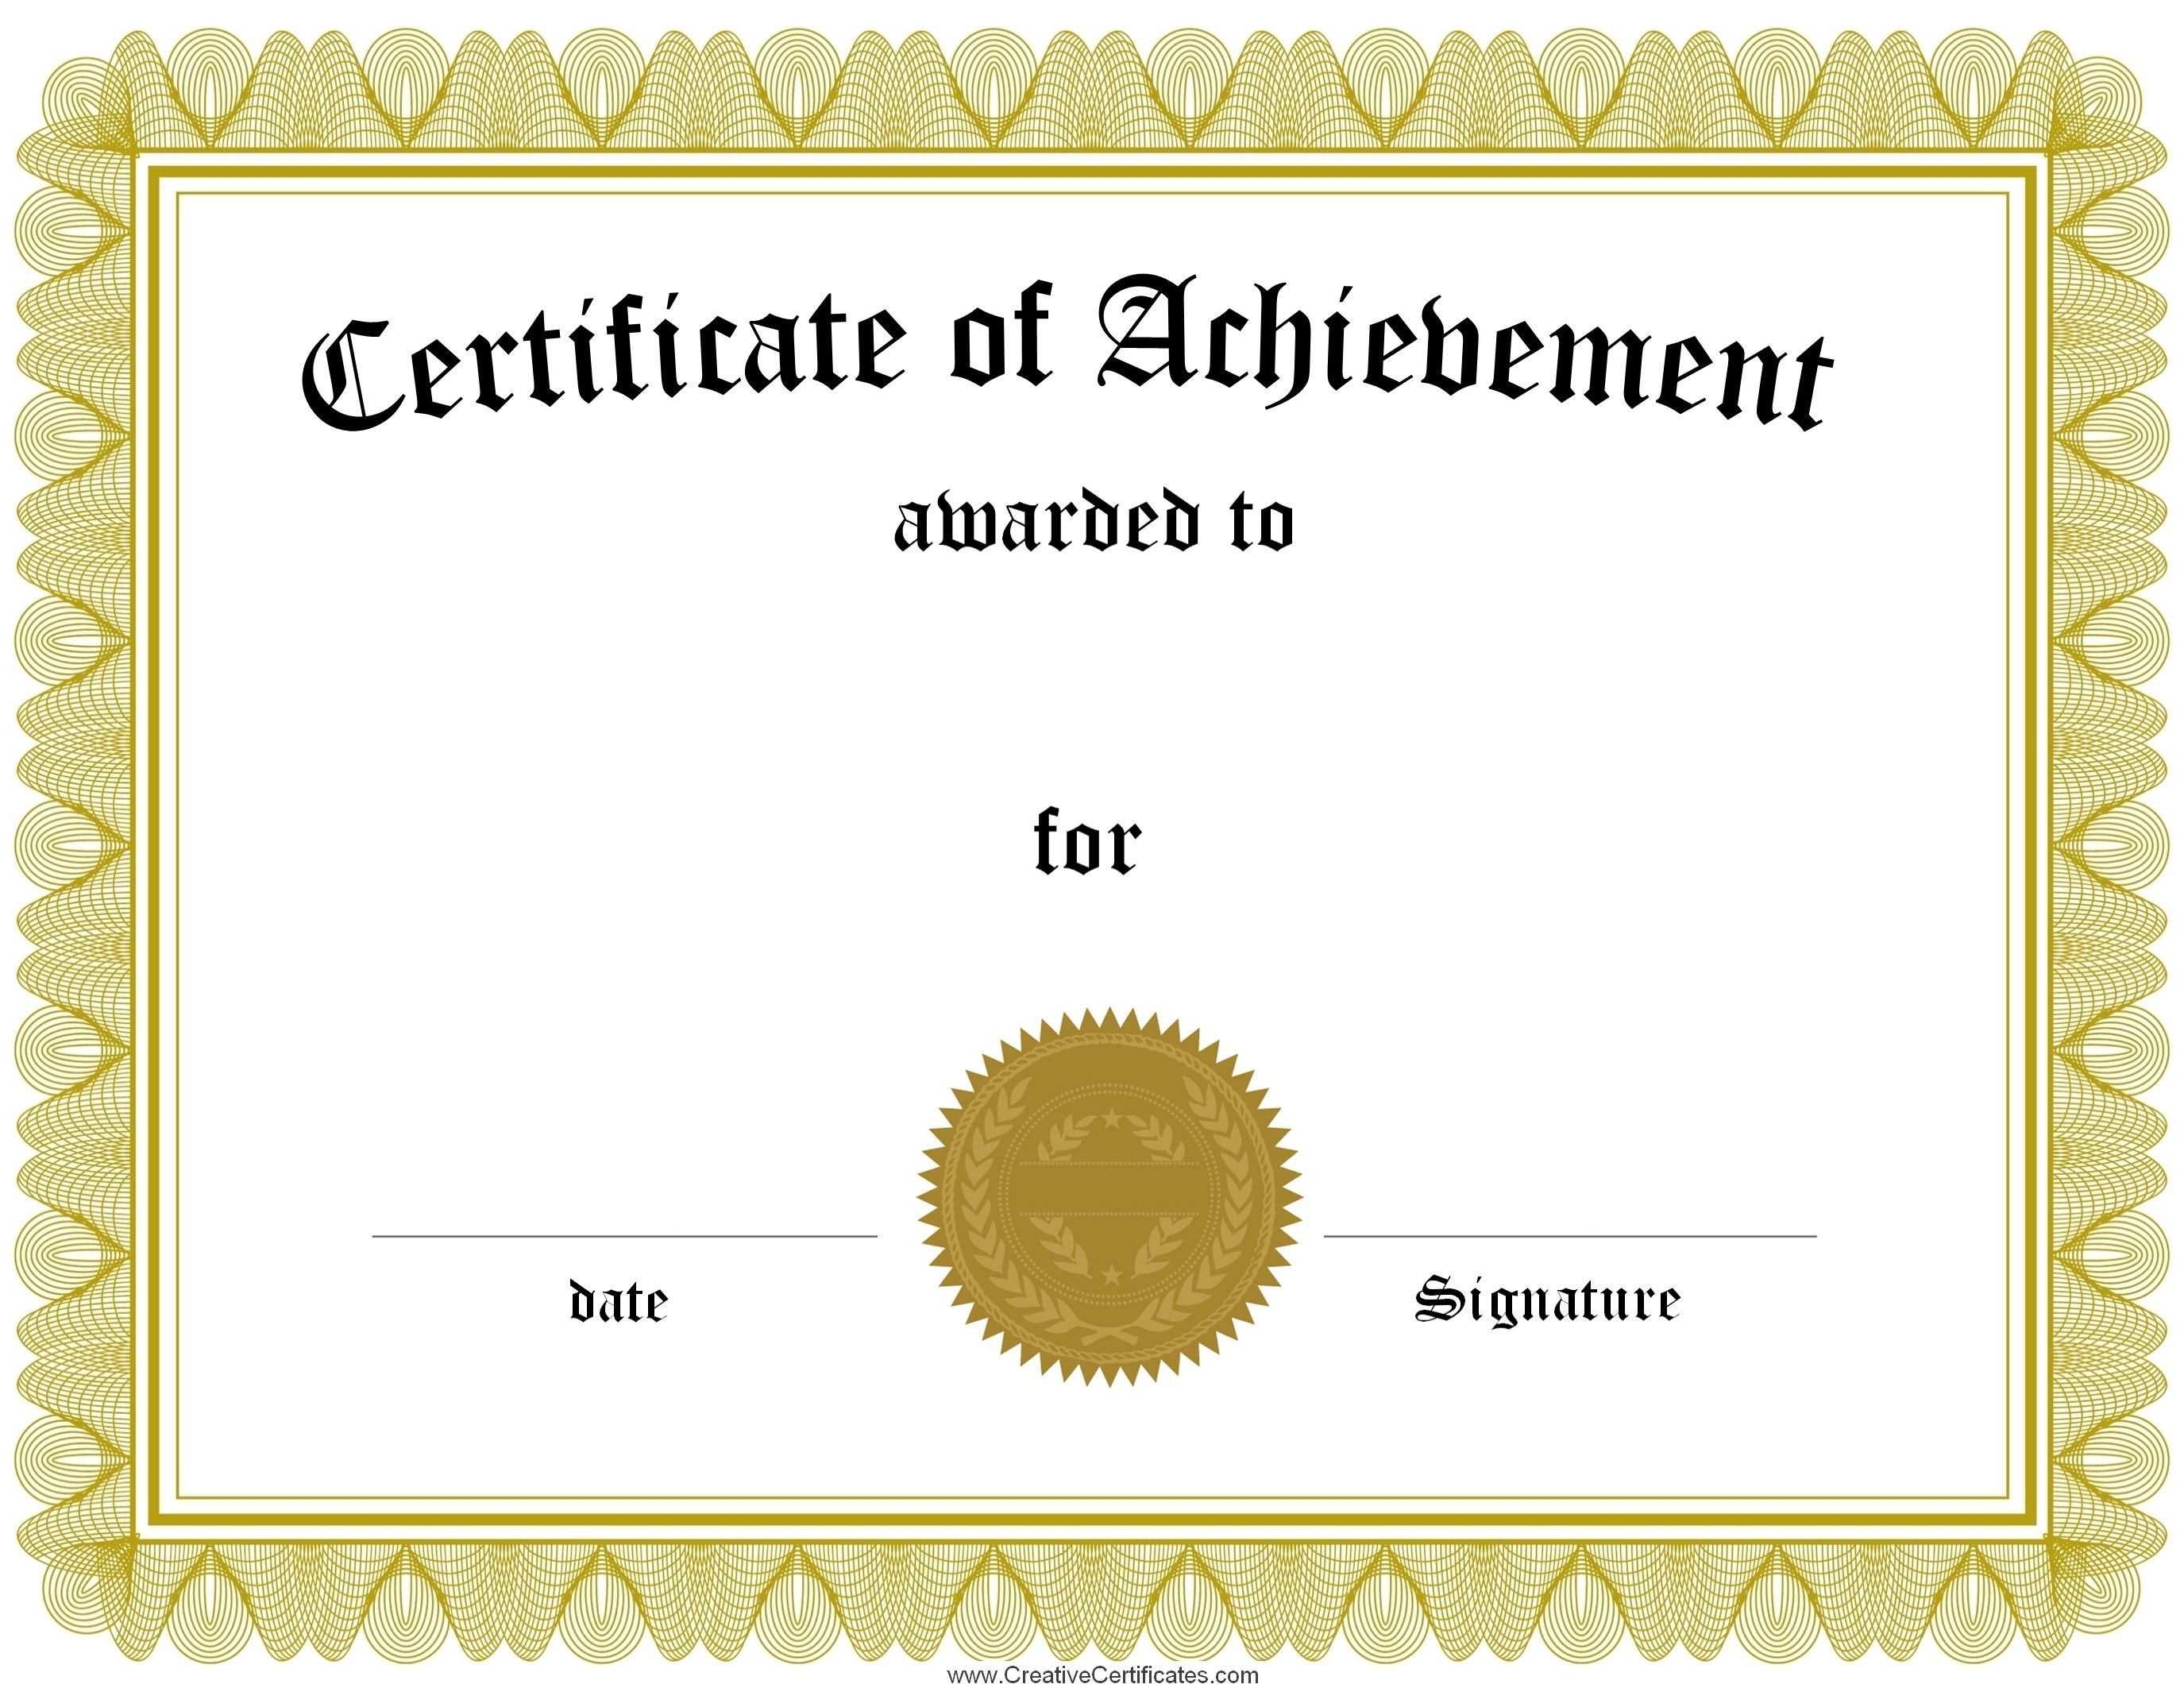 Award Certificate Template Certificate Templates Best Free Images - Free Printable Blank Certificates Of Achievement